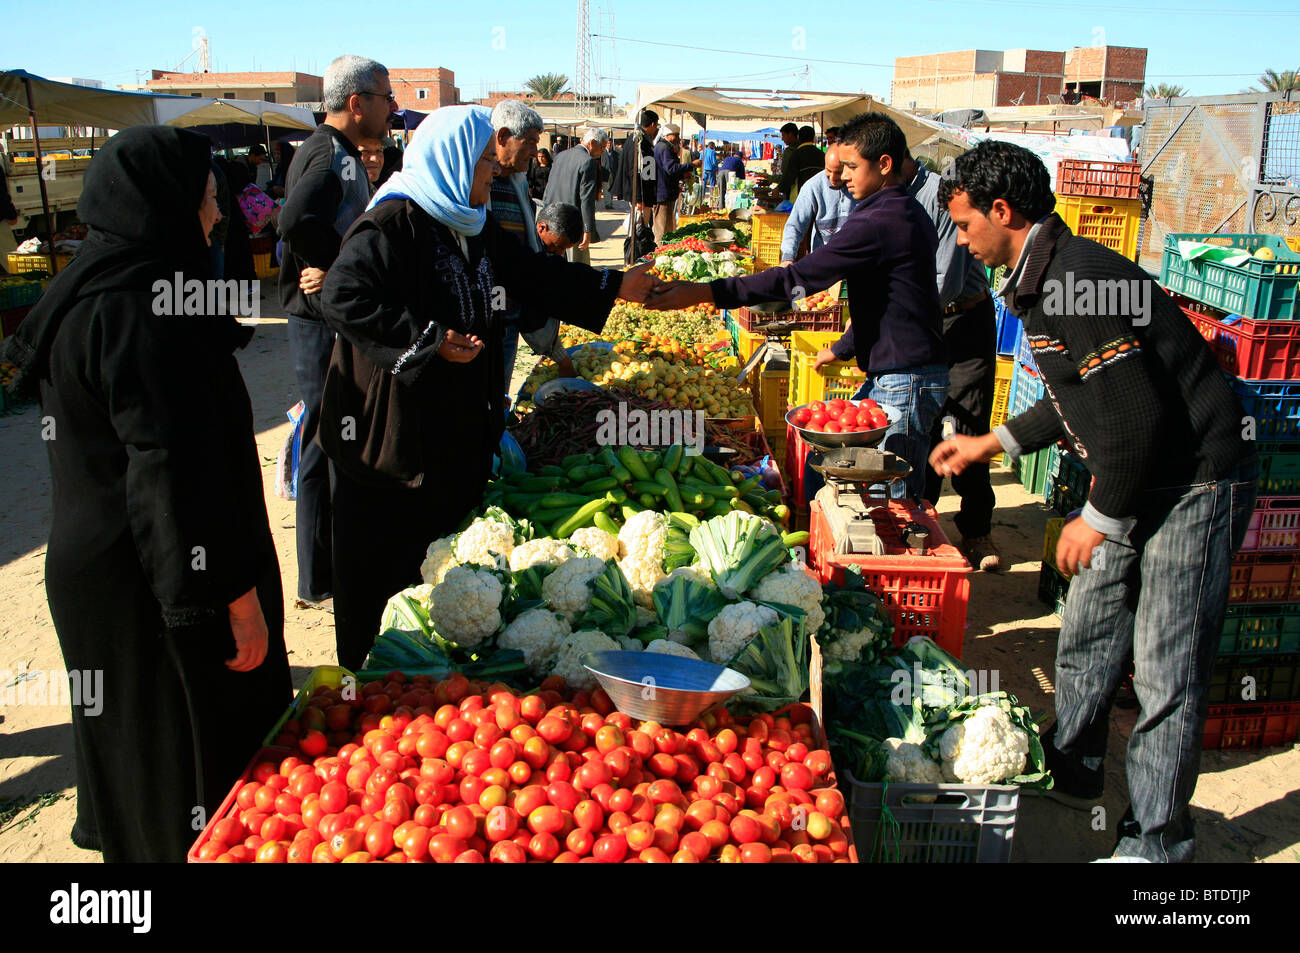 Muslim women buying fruit and vegetables at the local market - Stock Image